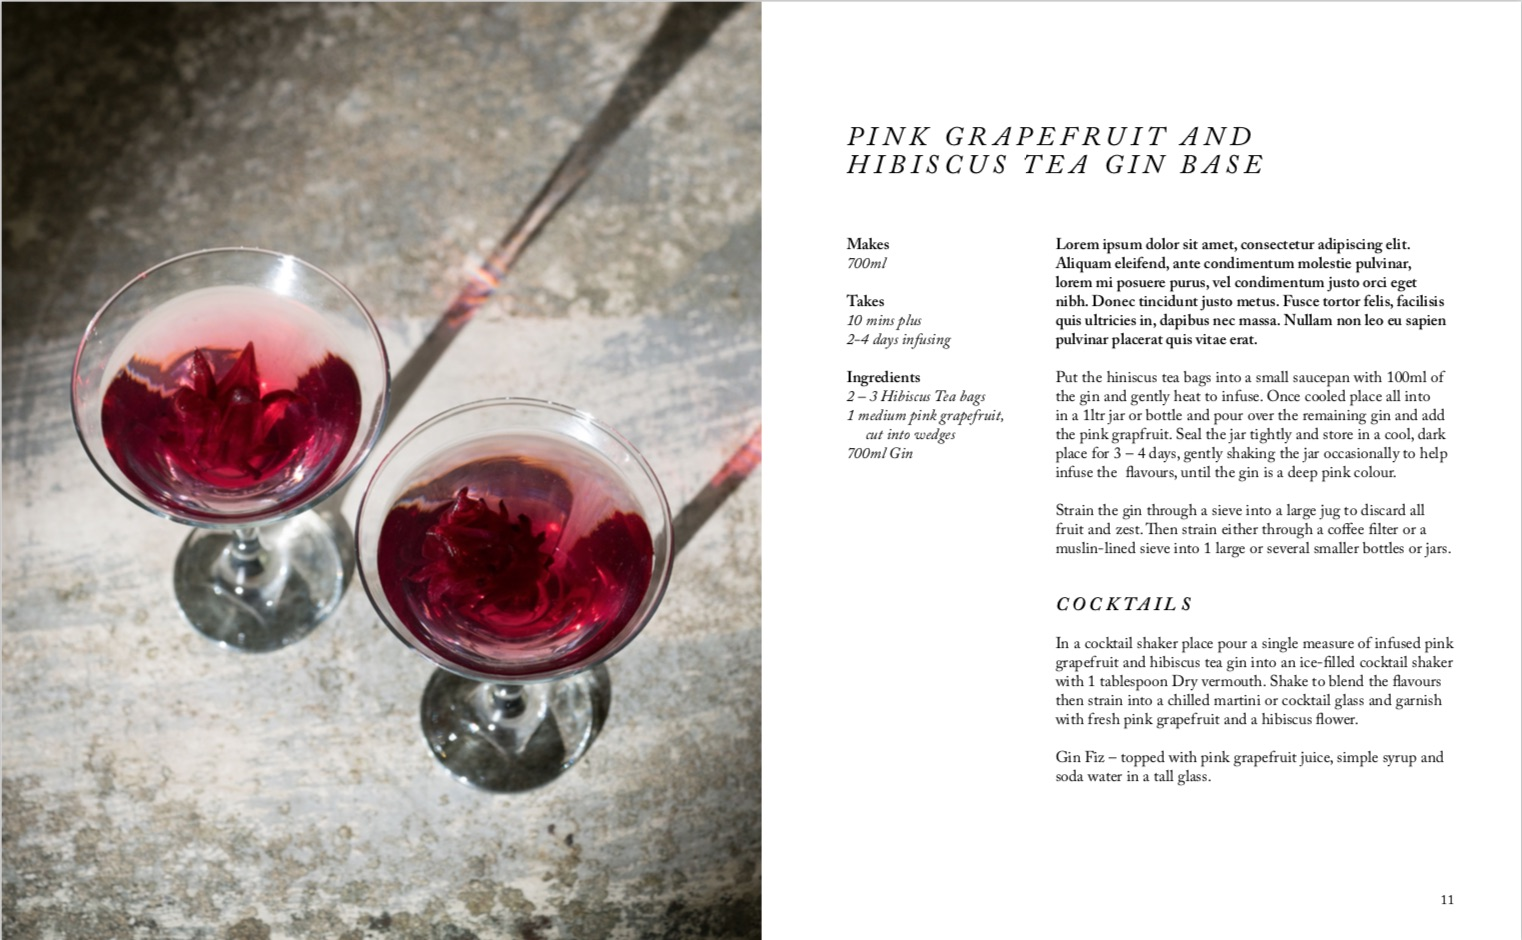 By Kathy Kordalis from Infused Booze: Over 60 batched spirits and liqueurs to make at home copyright Hardie Grant Books 2018